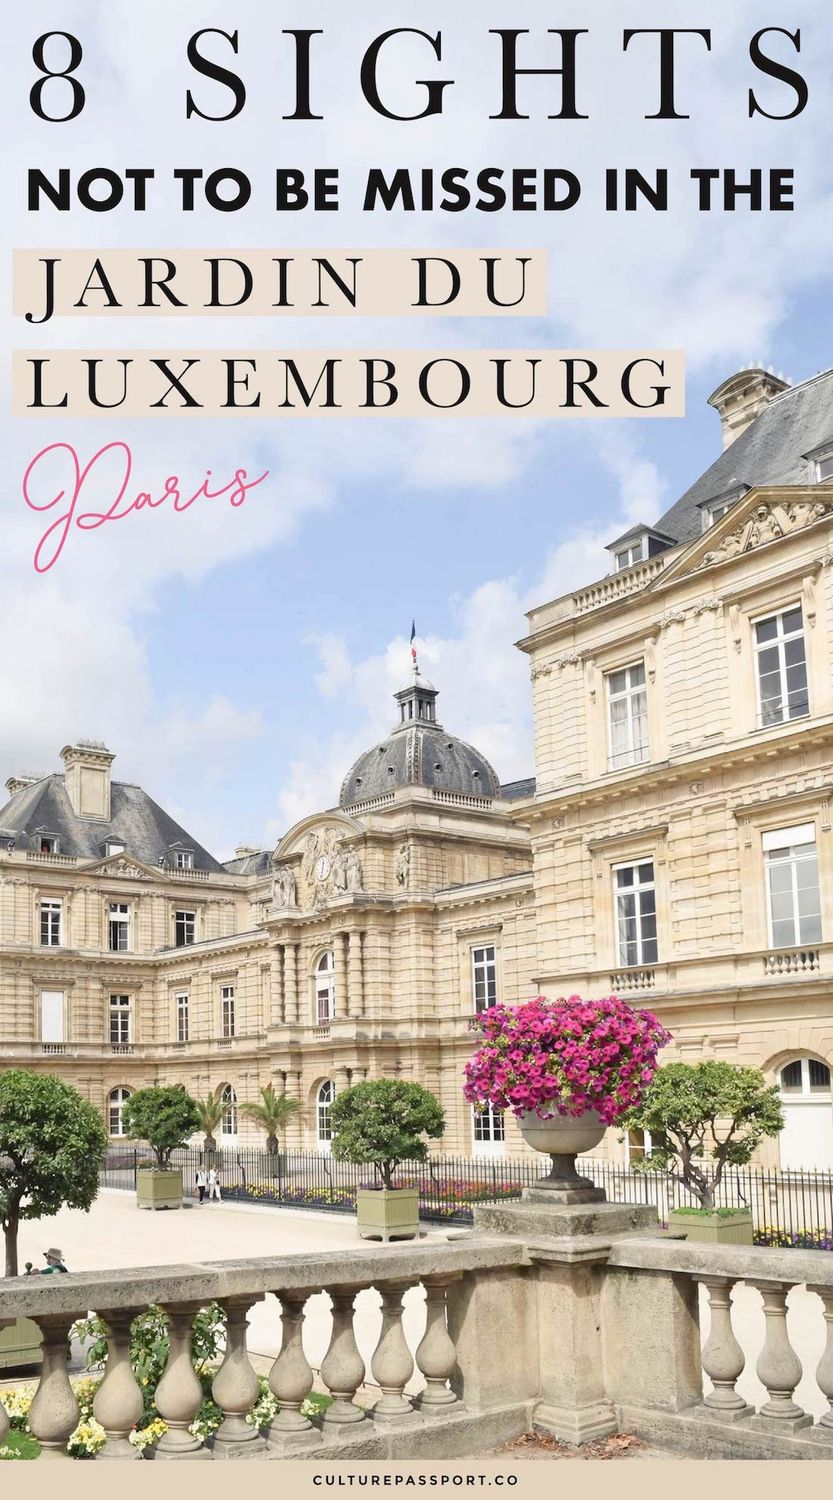 8 Sights Not To Be Missed: Jardin Du Luxembourg, Paris, France #Paris #ParisTips